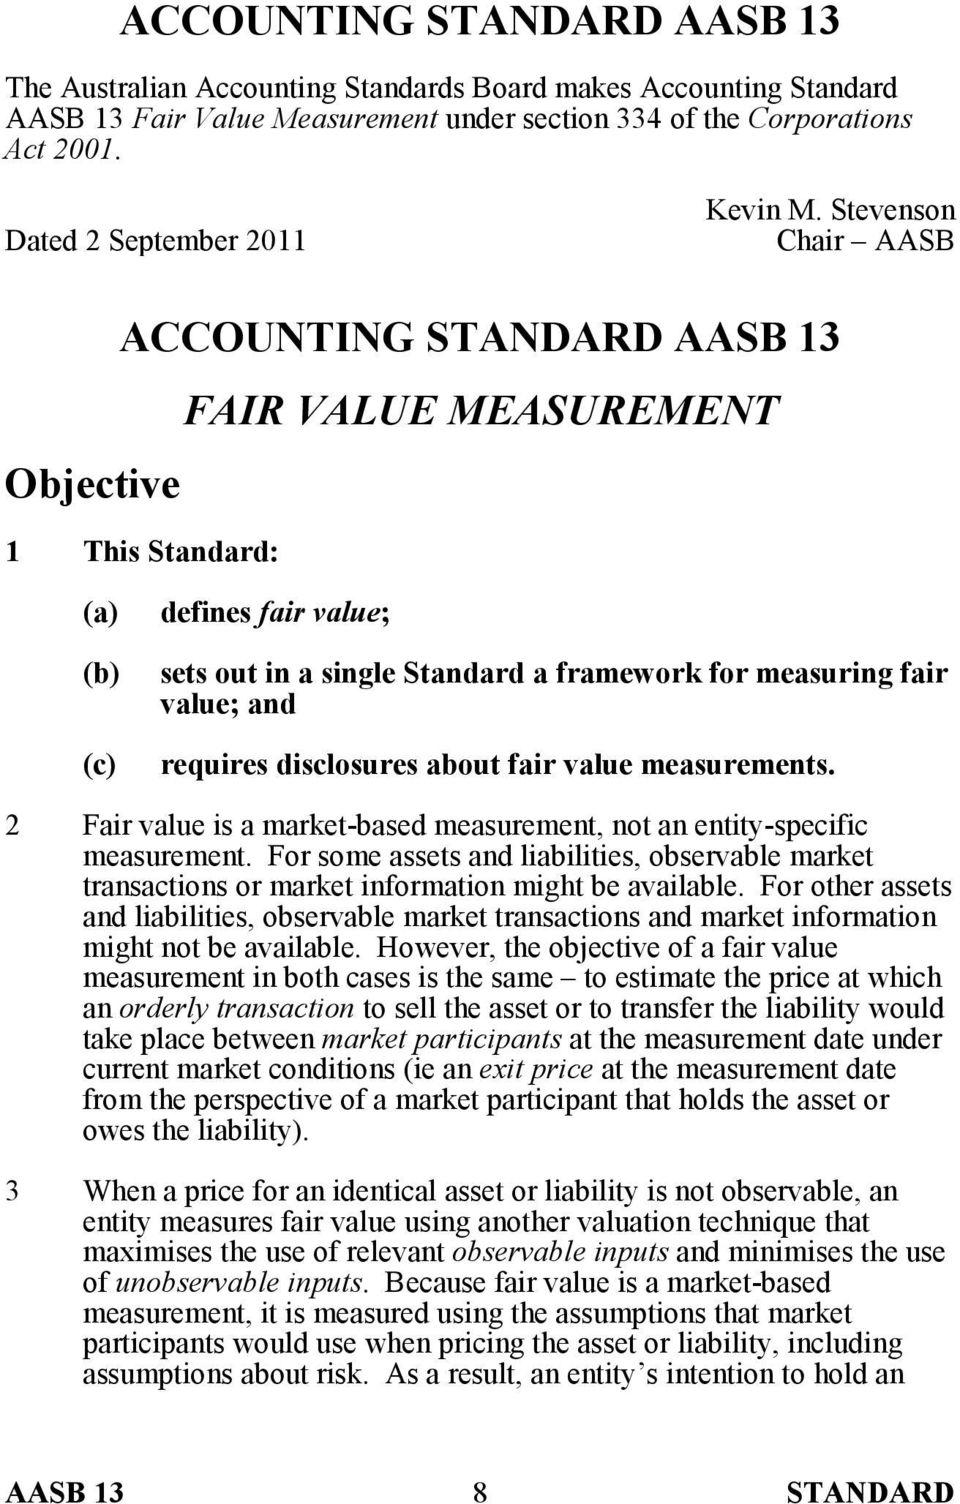 Stevenson Chair AASB ACCOUNTING STANDARD AASB 13 FAIR VALUE MEASUREMENT Objective 1 This Standard: (c) defines fair value; sets out in a single Standard a framework for measuring fair value; and